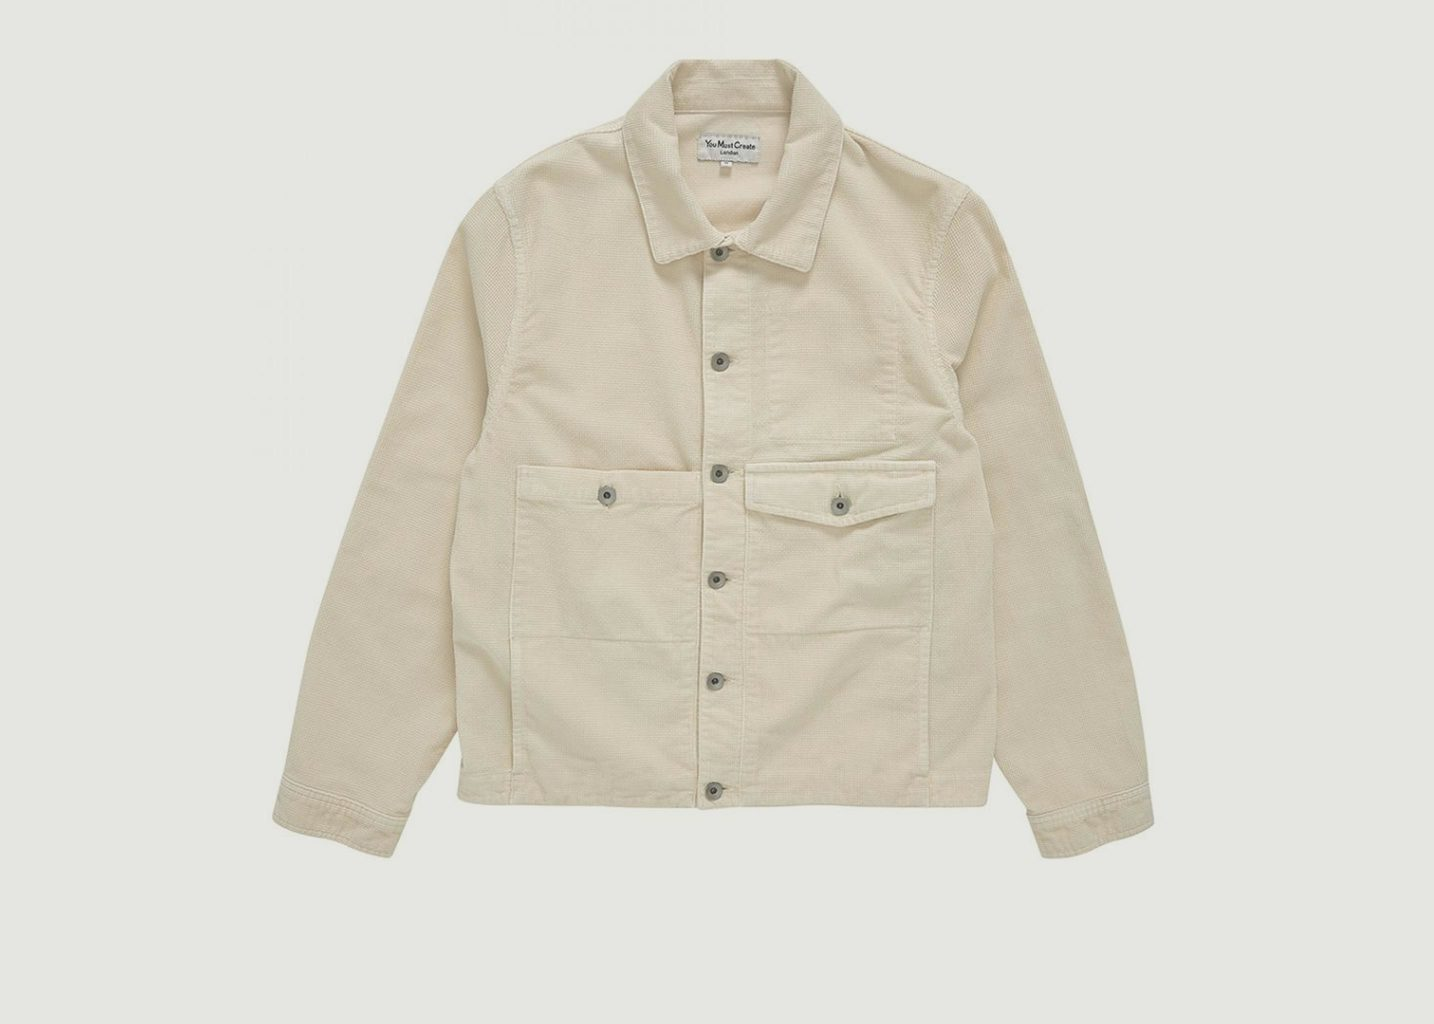 Veste Pinkley - YMC